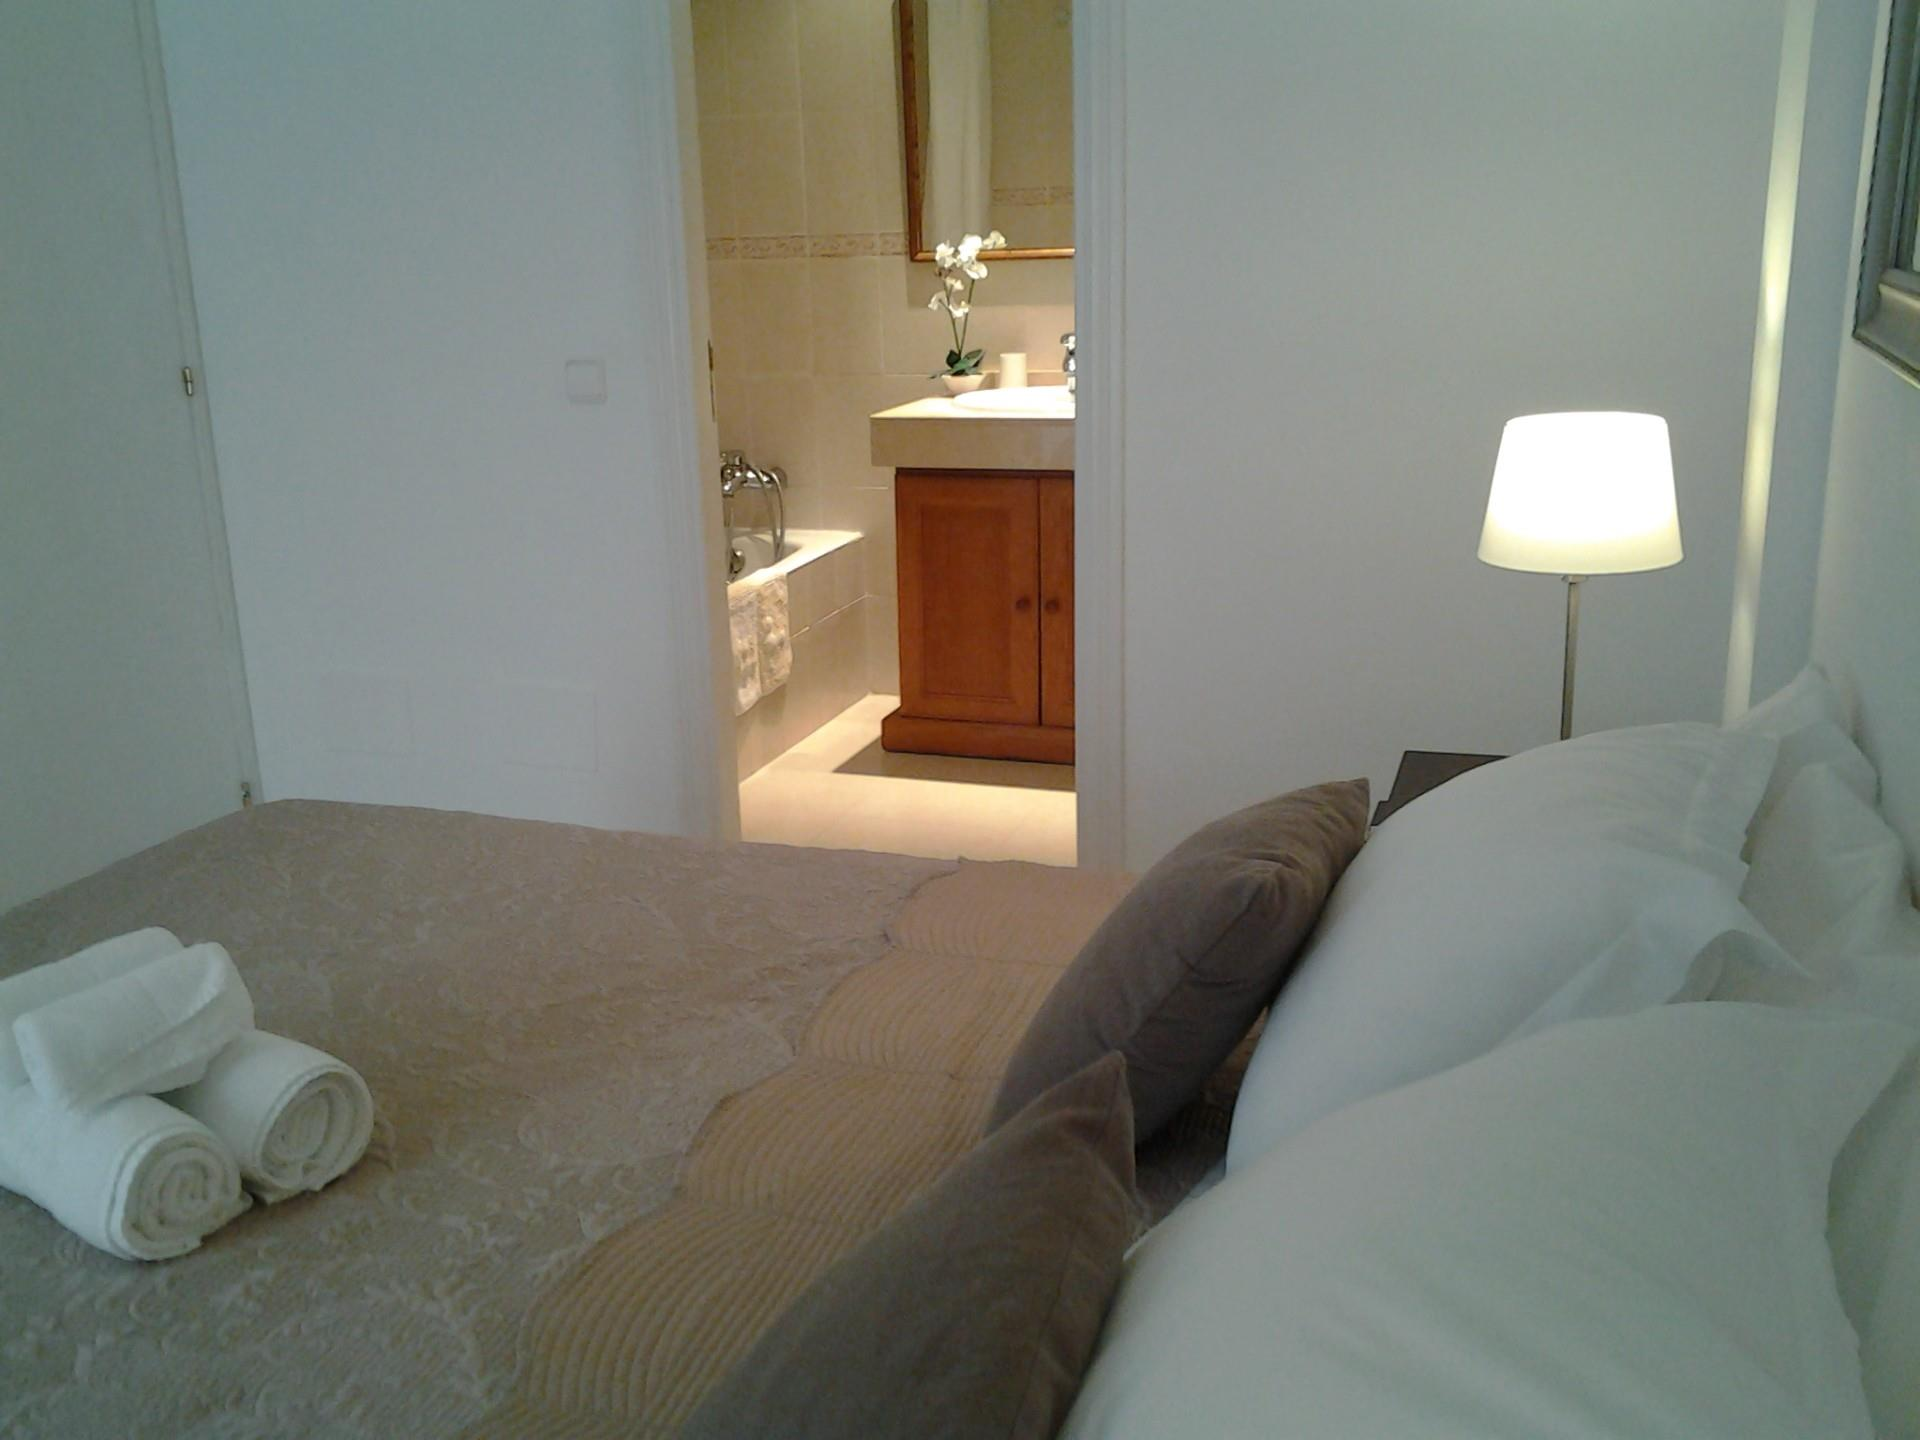 Location Appartement  Carrer ses mates. Ses salines / carrer ses mates